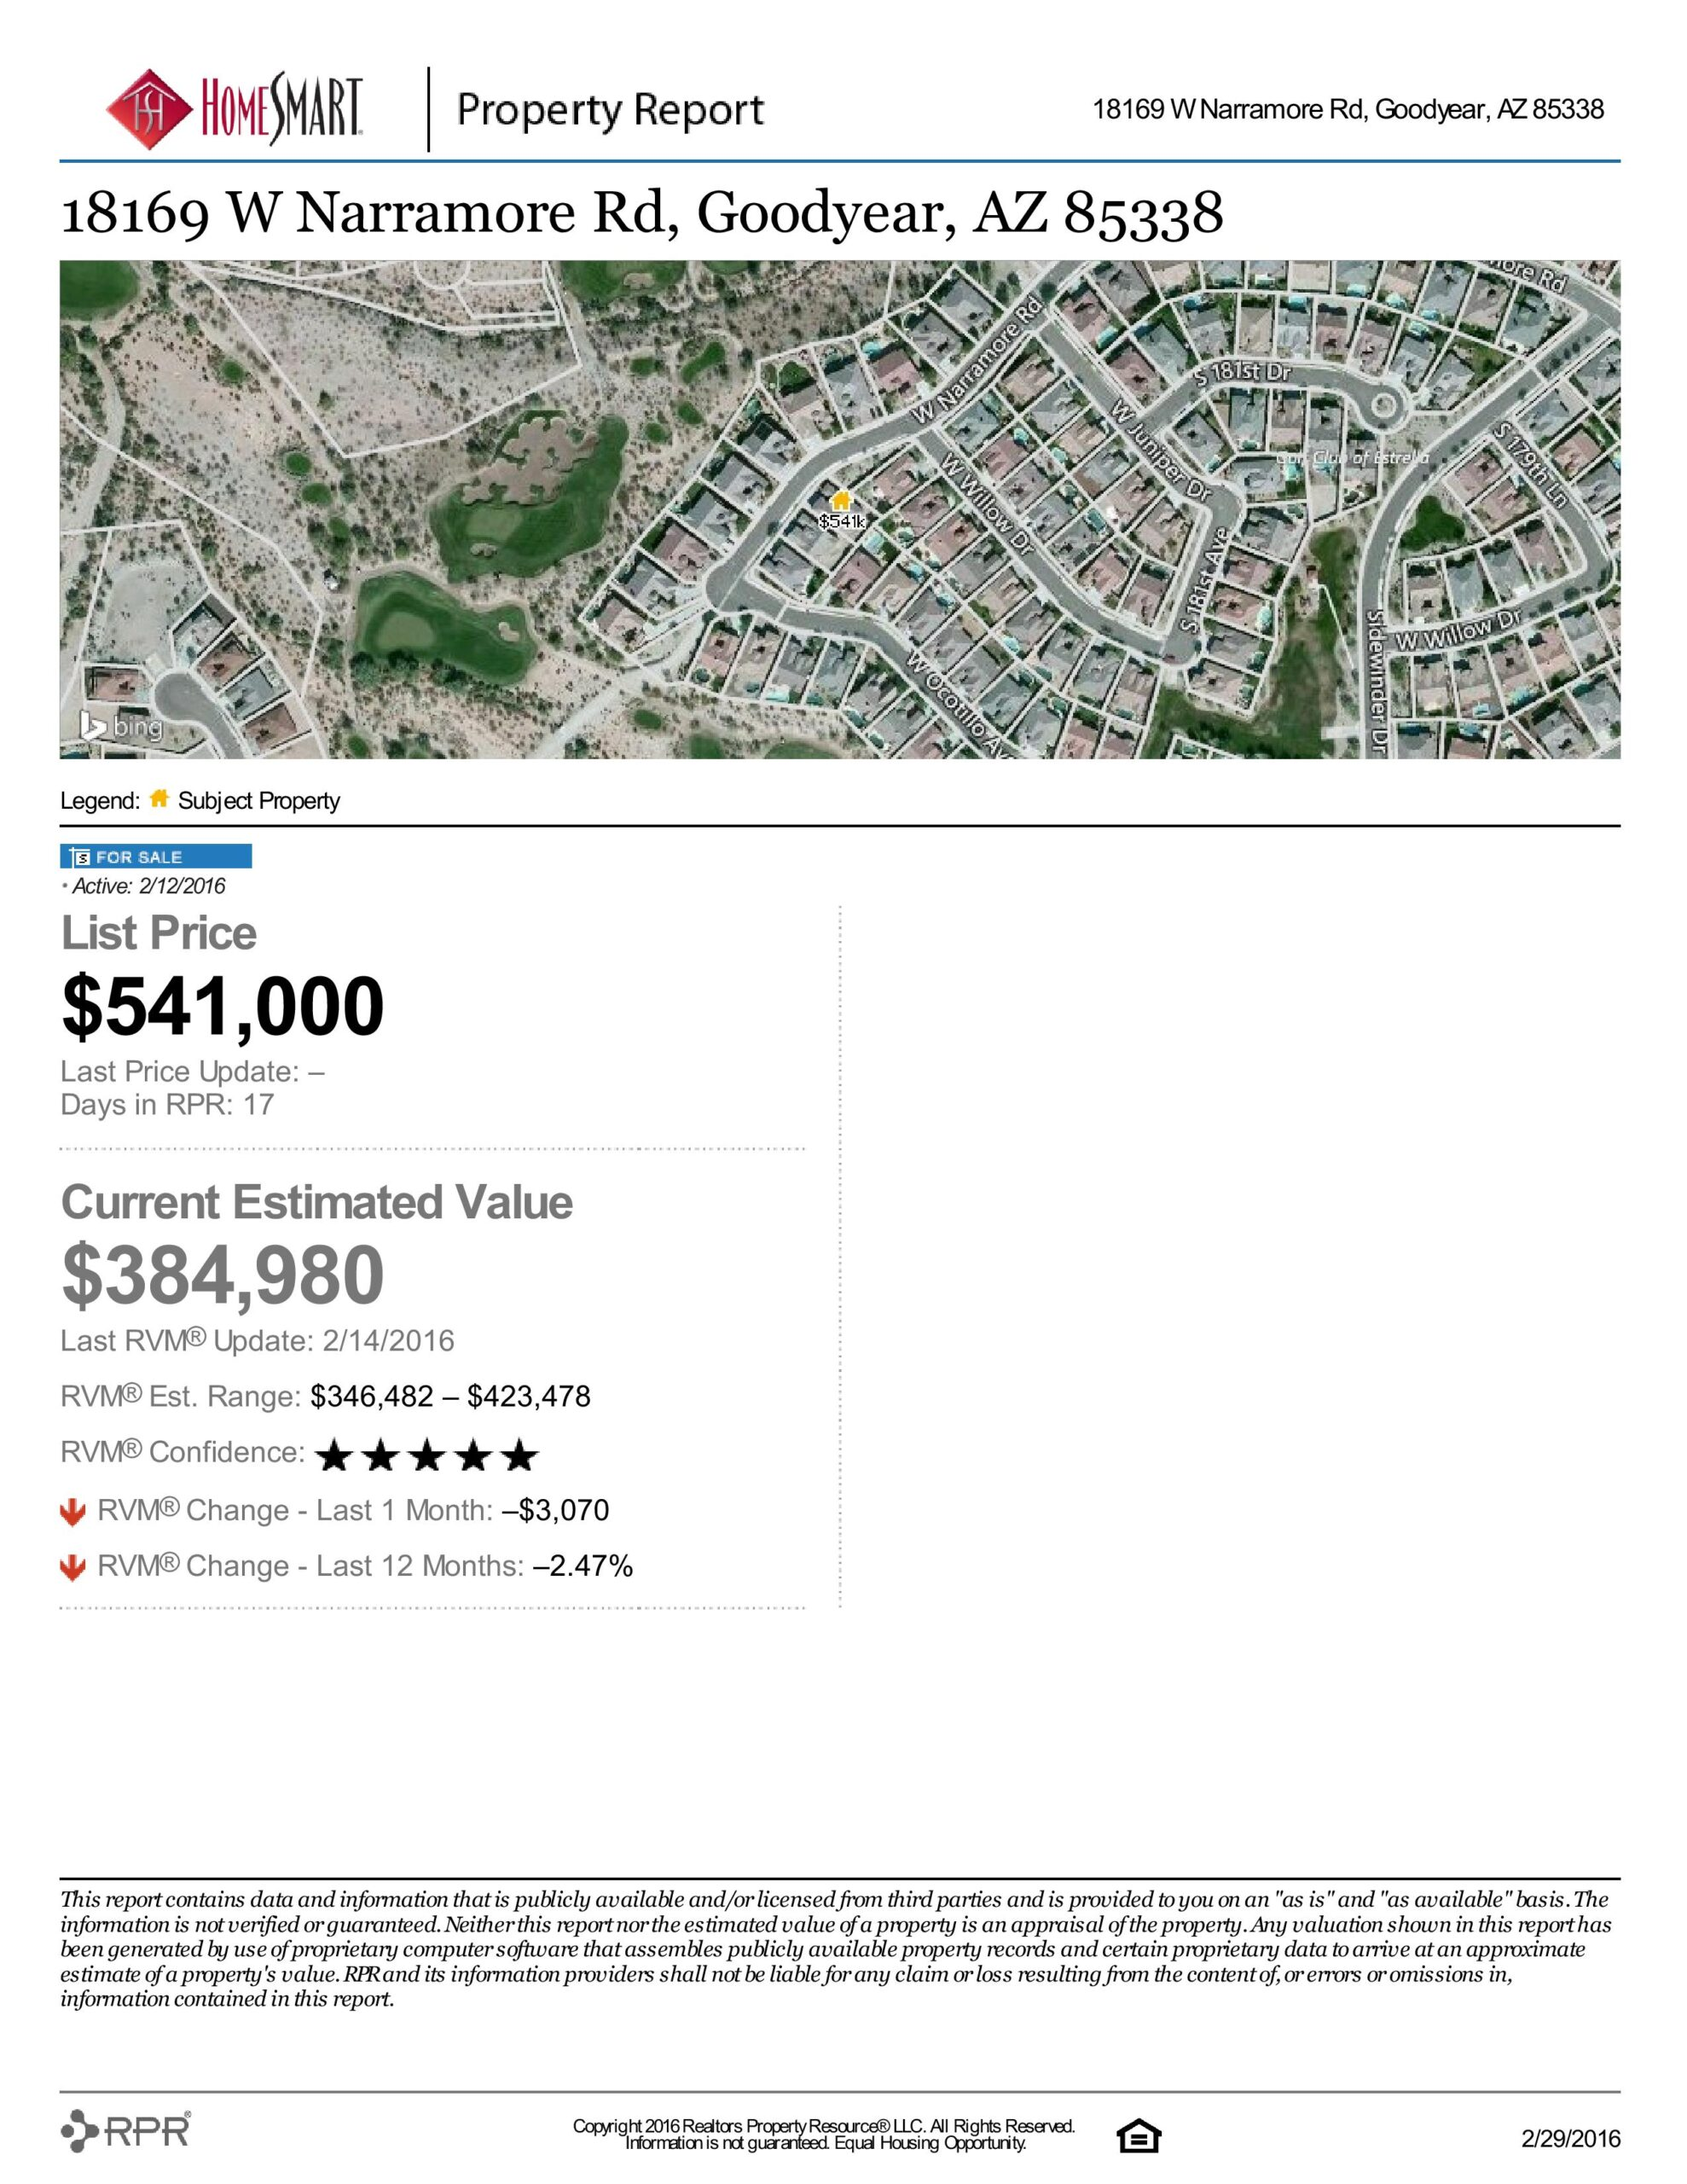 18169 W NARRAMORE RD PROPERTY REPORT-page-002